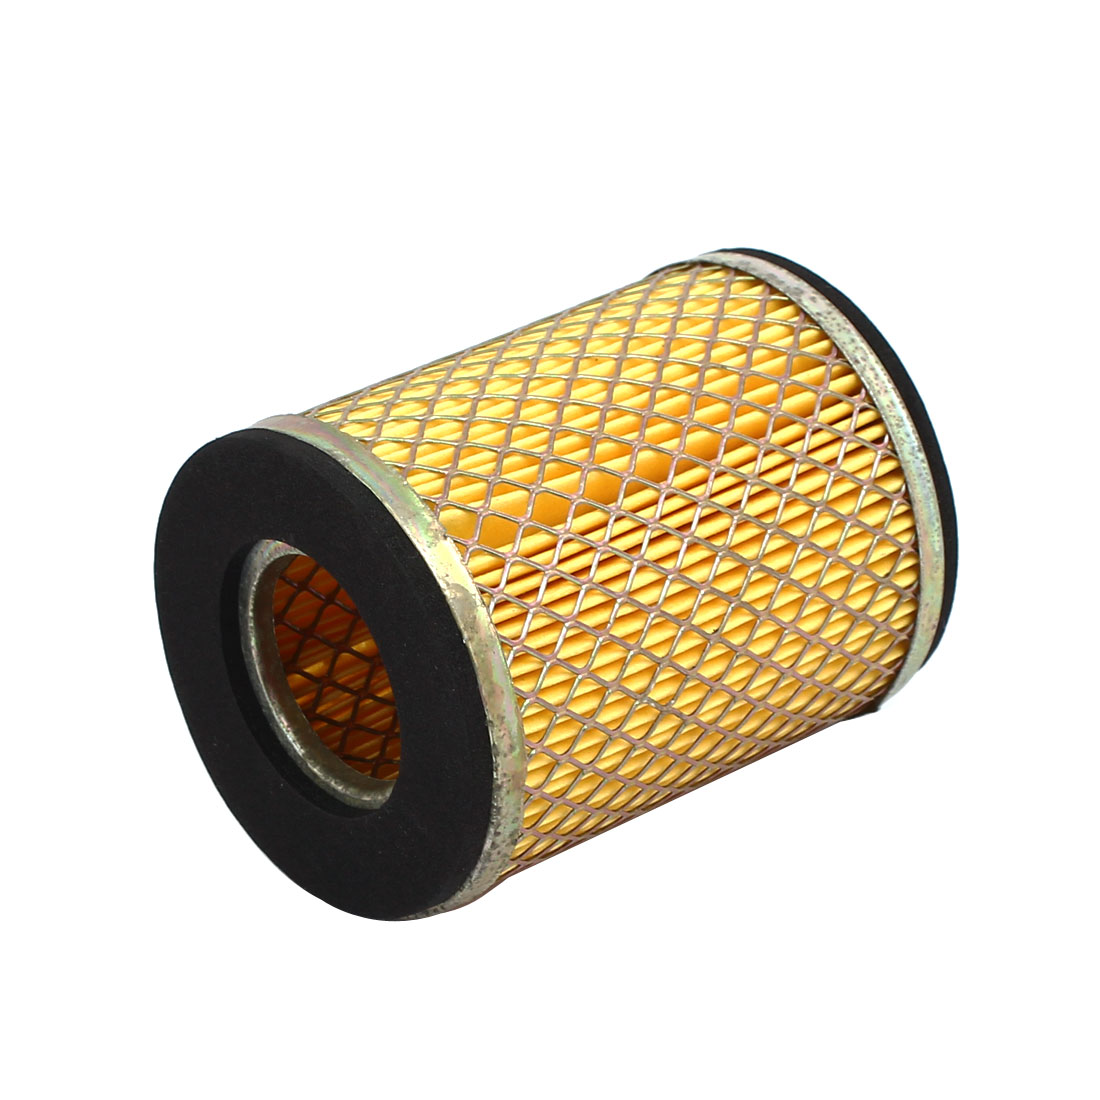 63mmx30mmx80mm Piston Type Air Compressor Element Filter